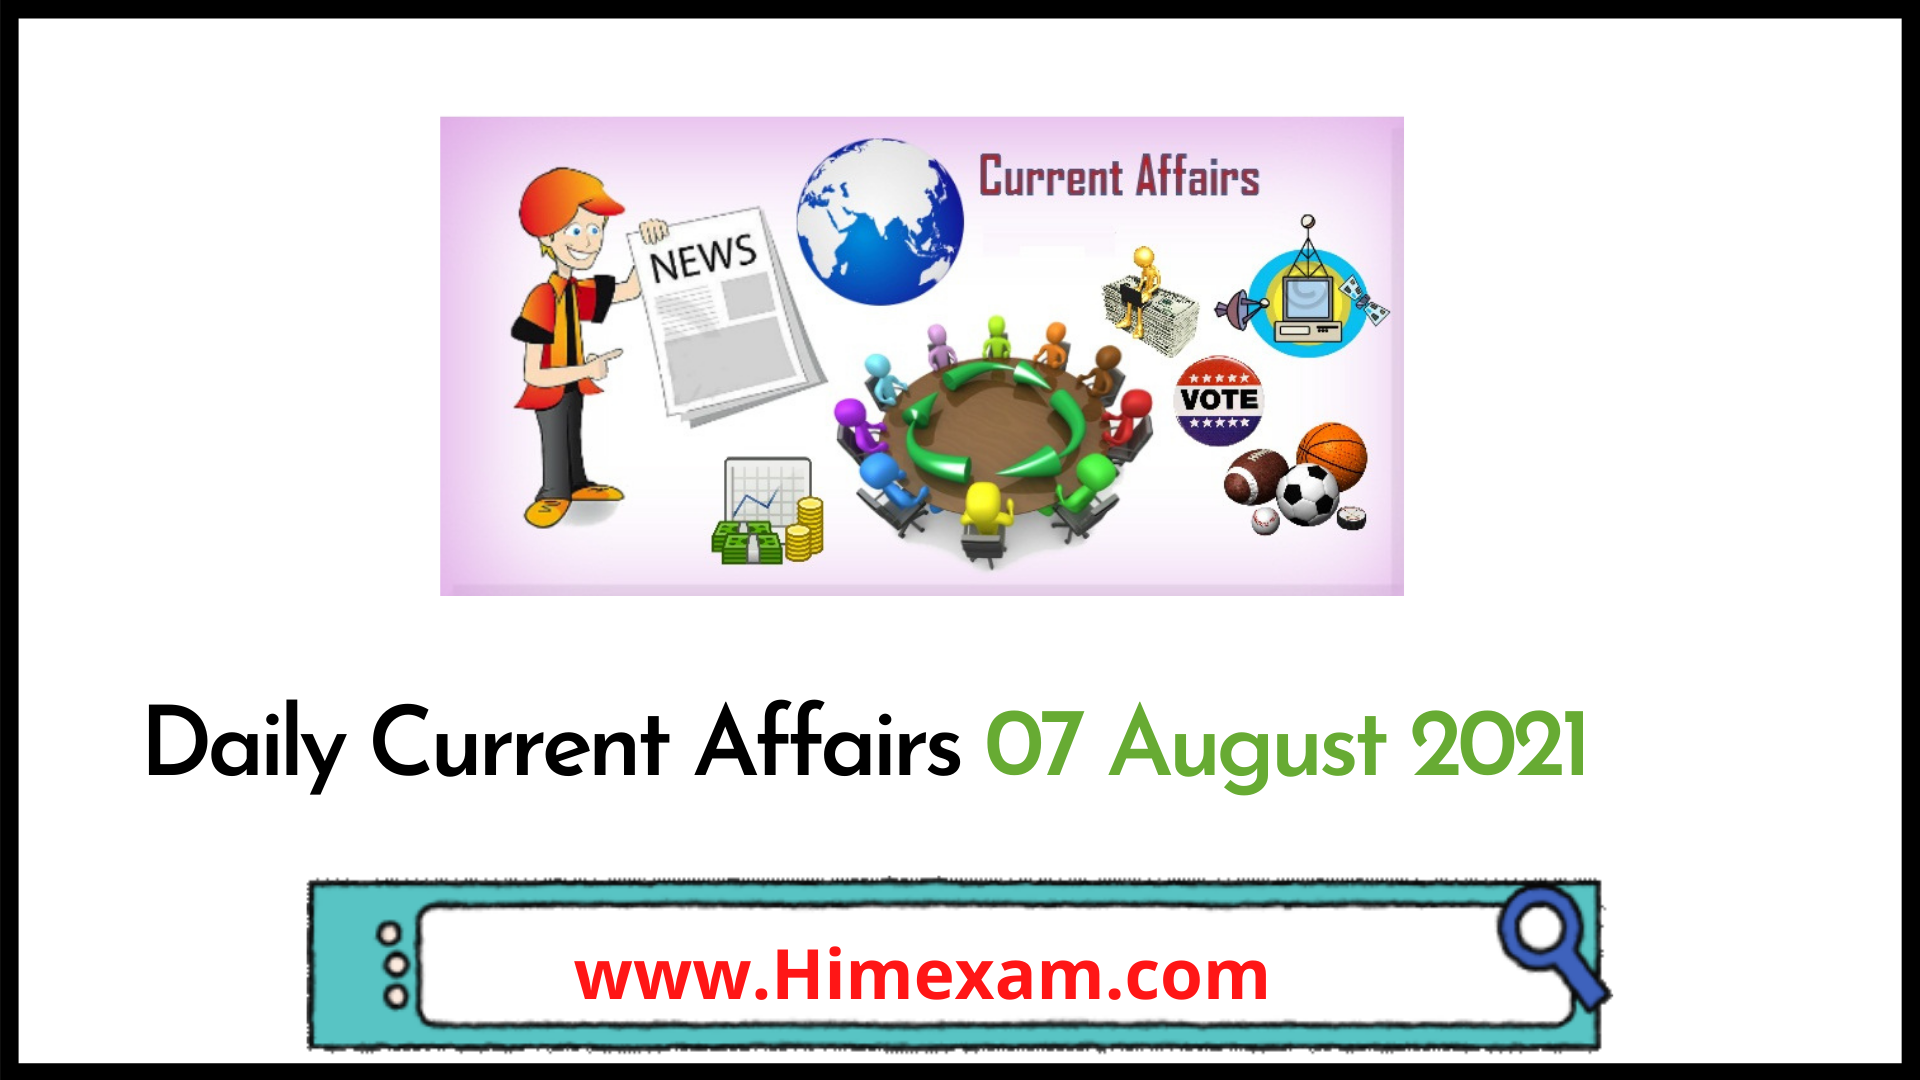 Daily Current Affairs 07 August 2021